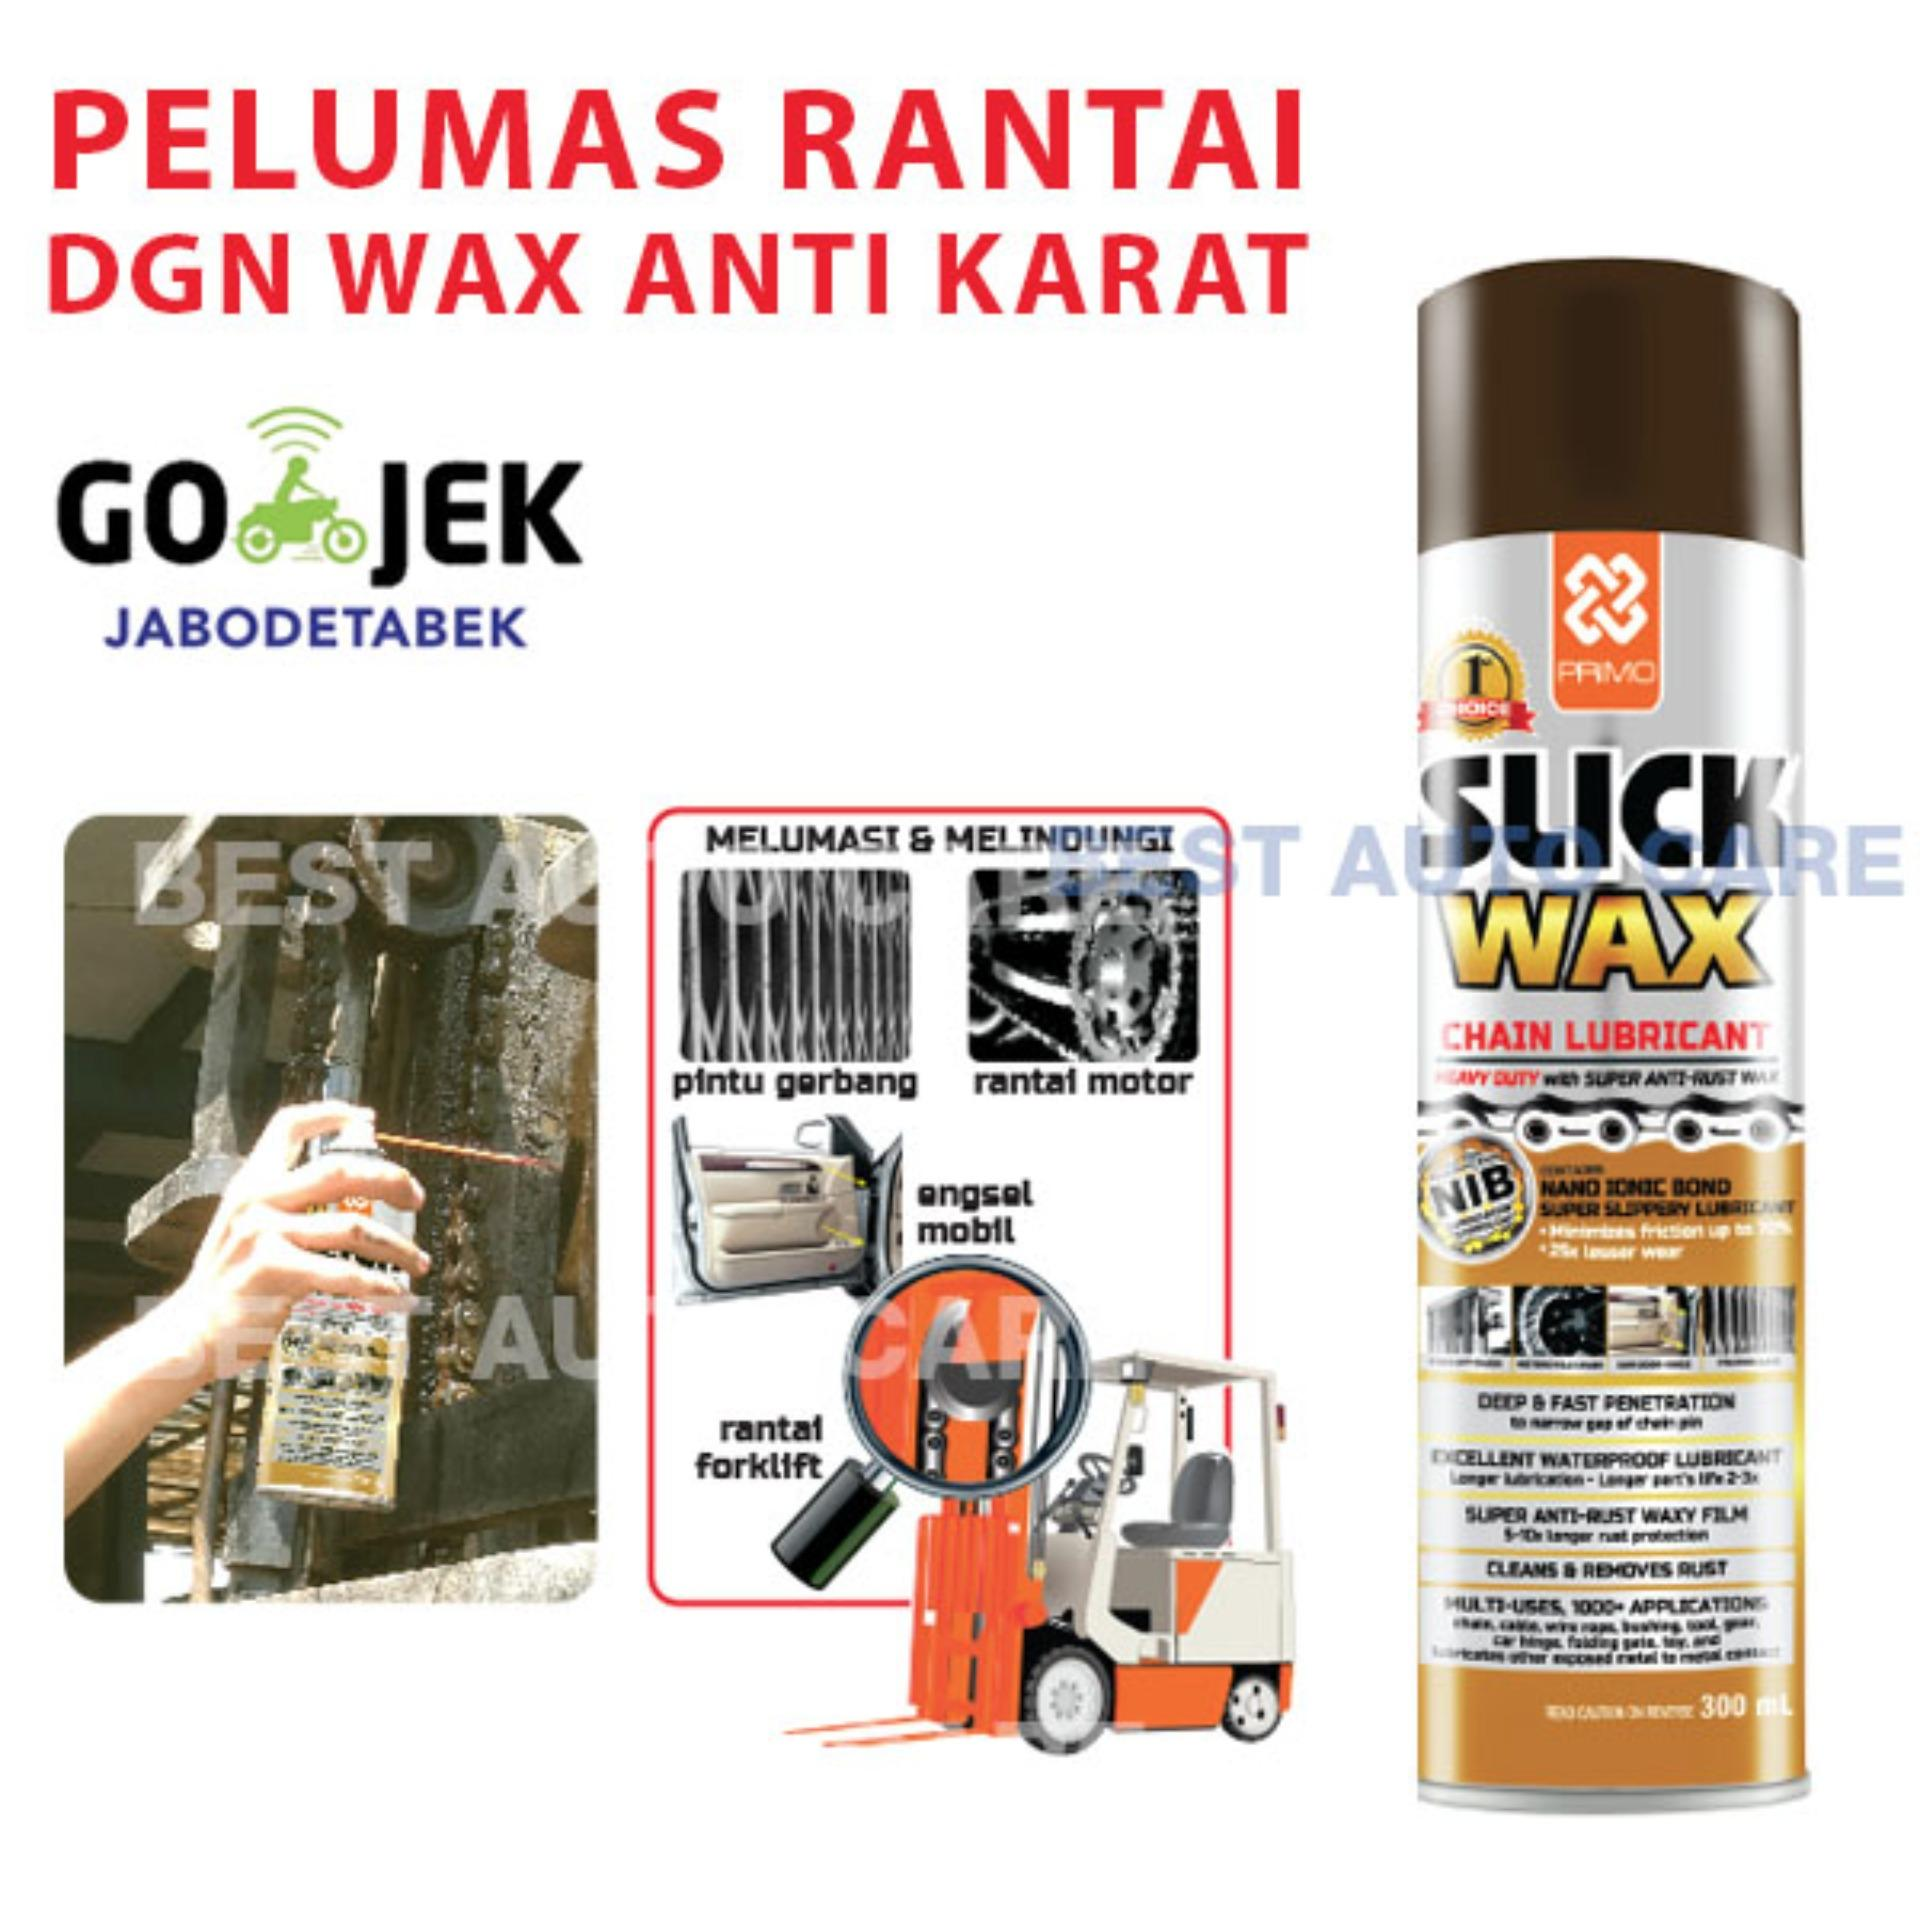 Primo Slick Wax Pelumas Rantai Super Anti Karat Chain Lube + WAX Terbaik - 300 mL